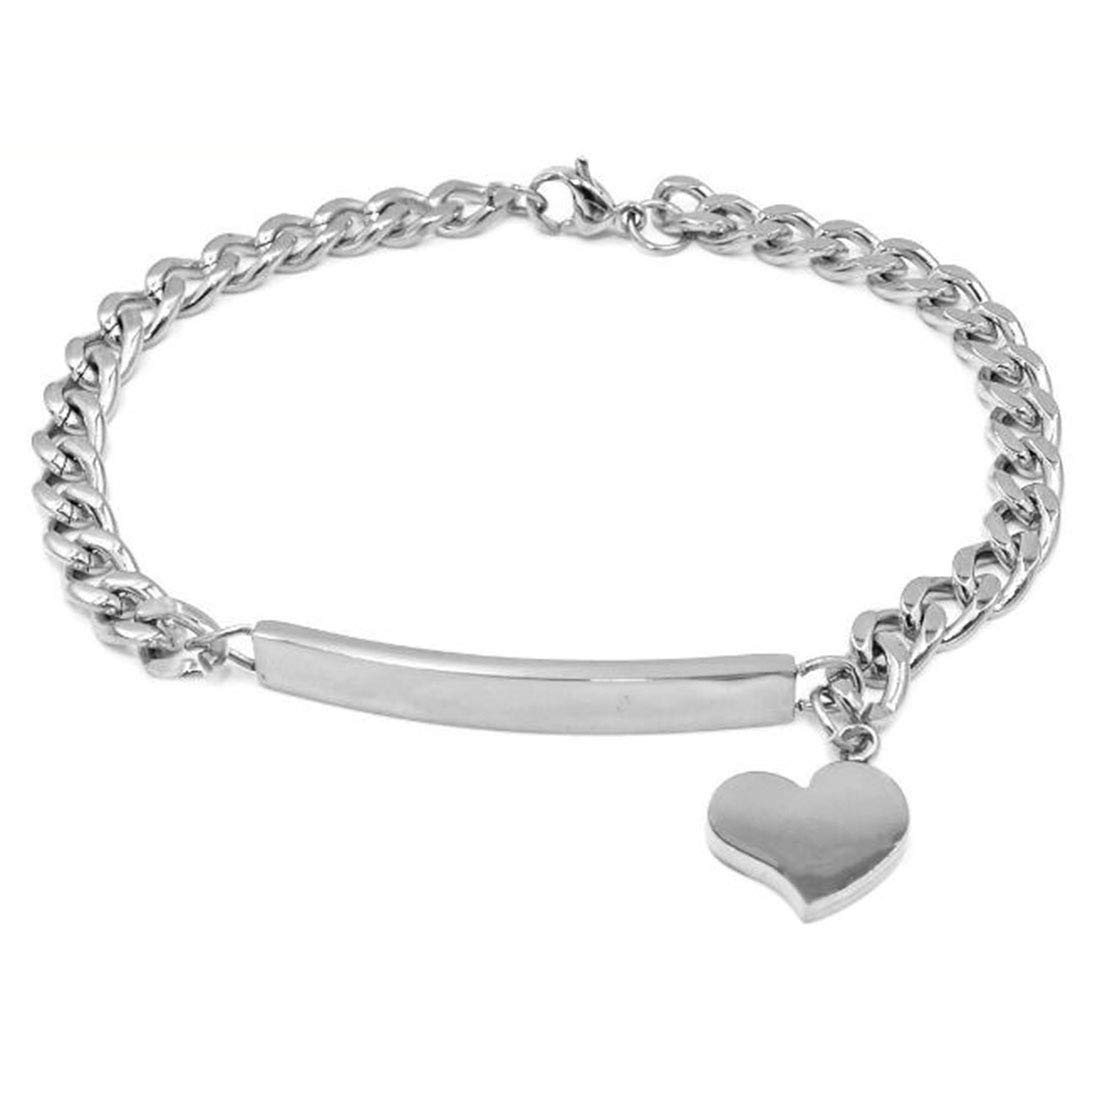 FOXI YOUTH Girls Shining Stainless Steel Curb Chain Identification Tag Heart Charm Link Bracelet